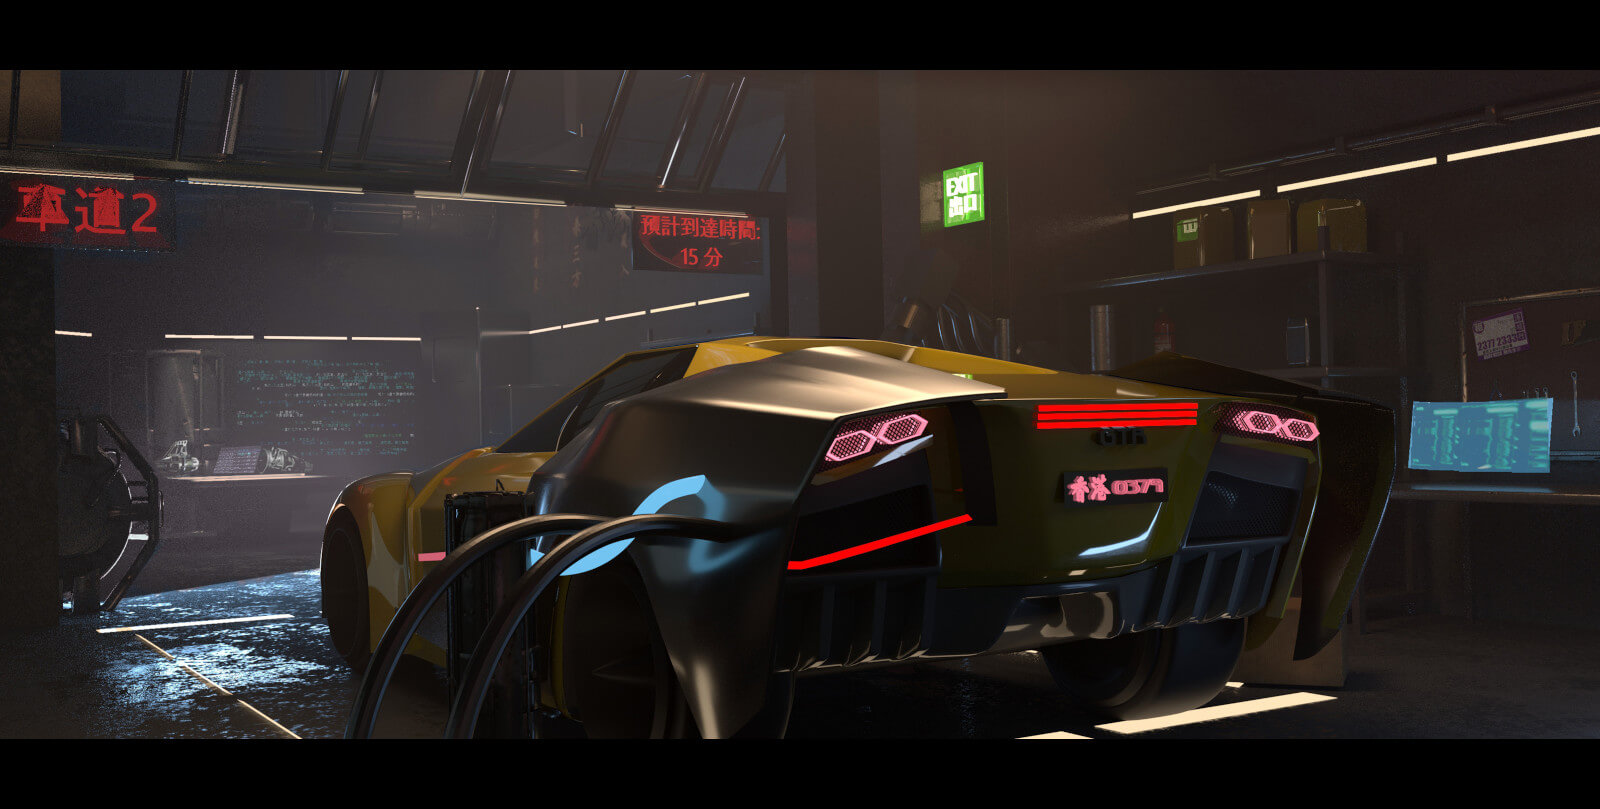 Sports car in futuristic auto garage